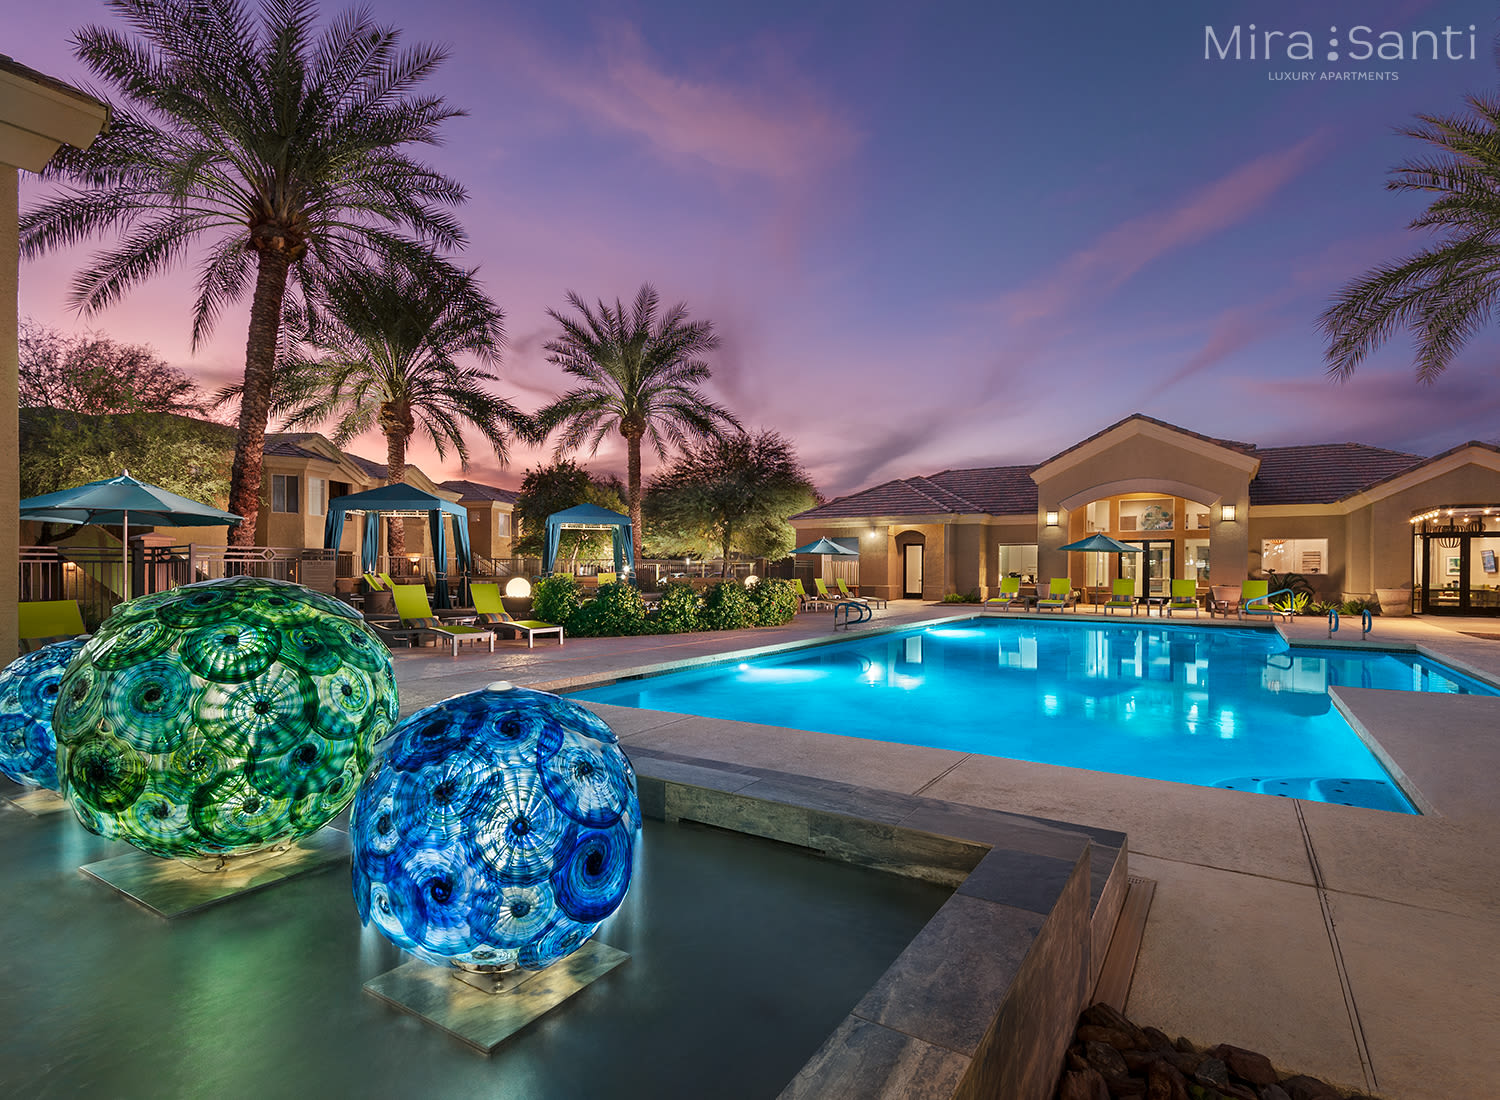 Mira Santi apartments in Chandler, Arizona